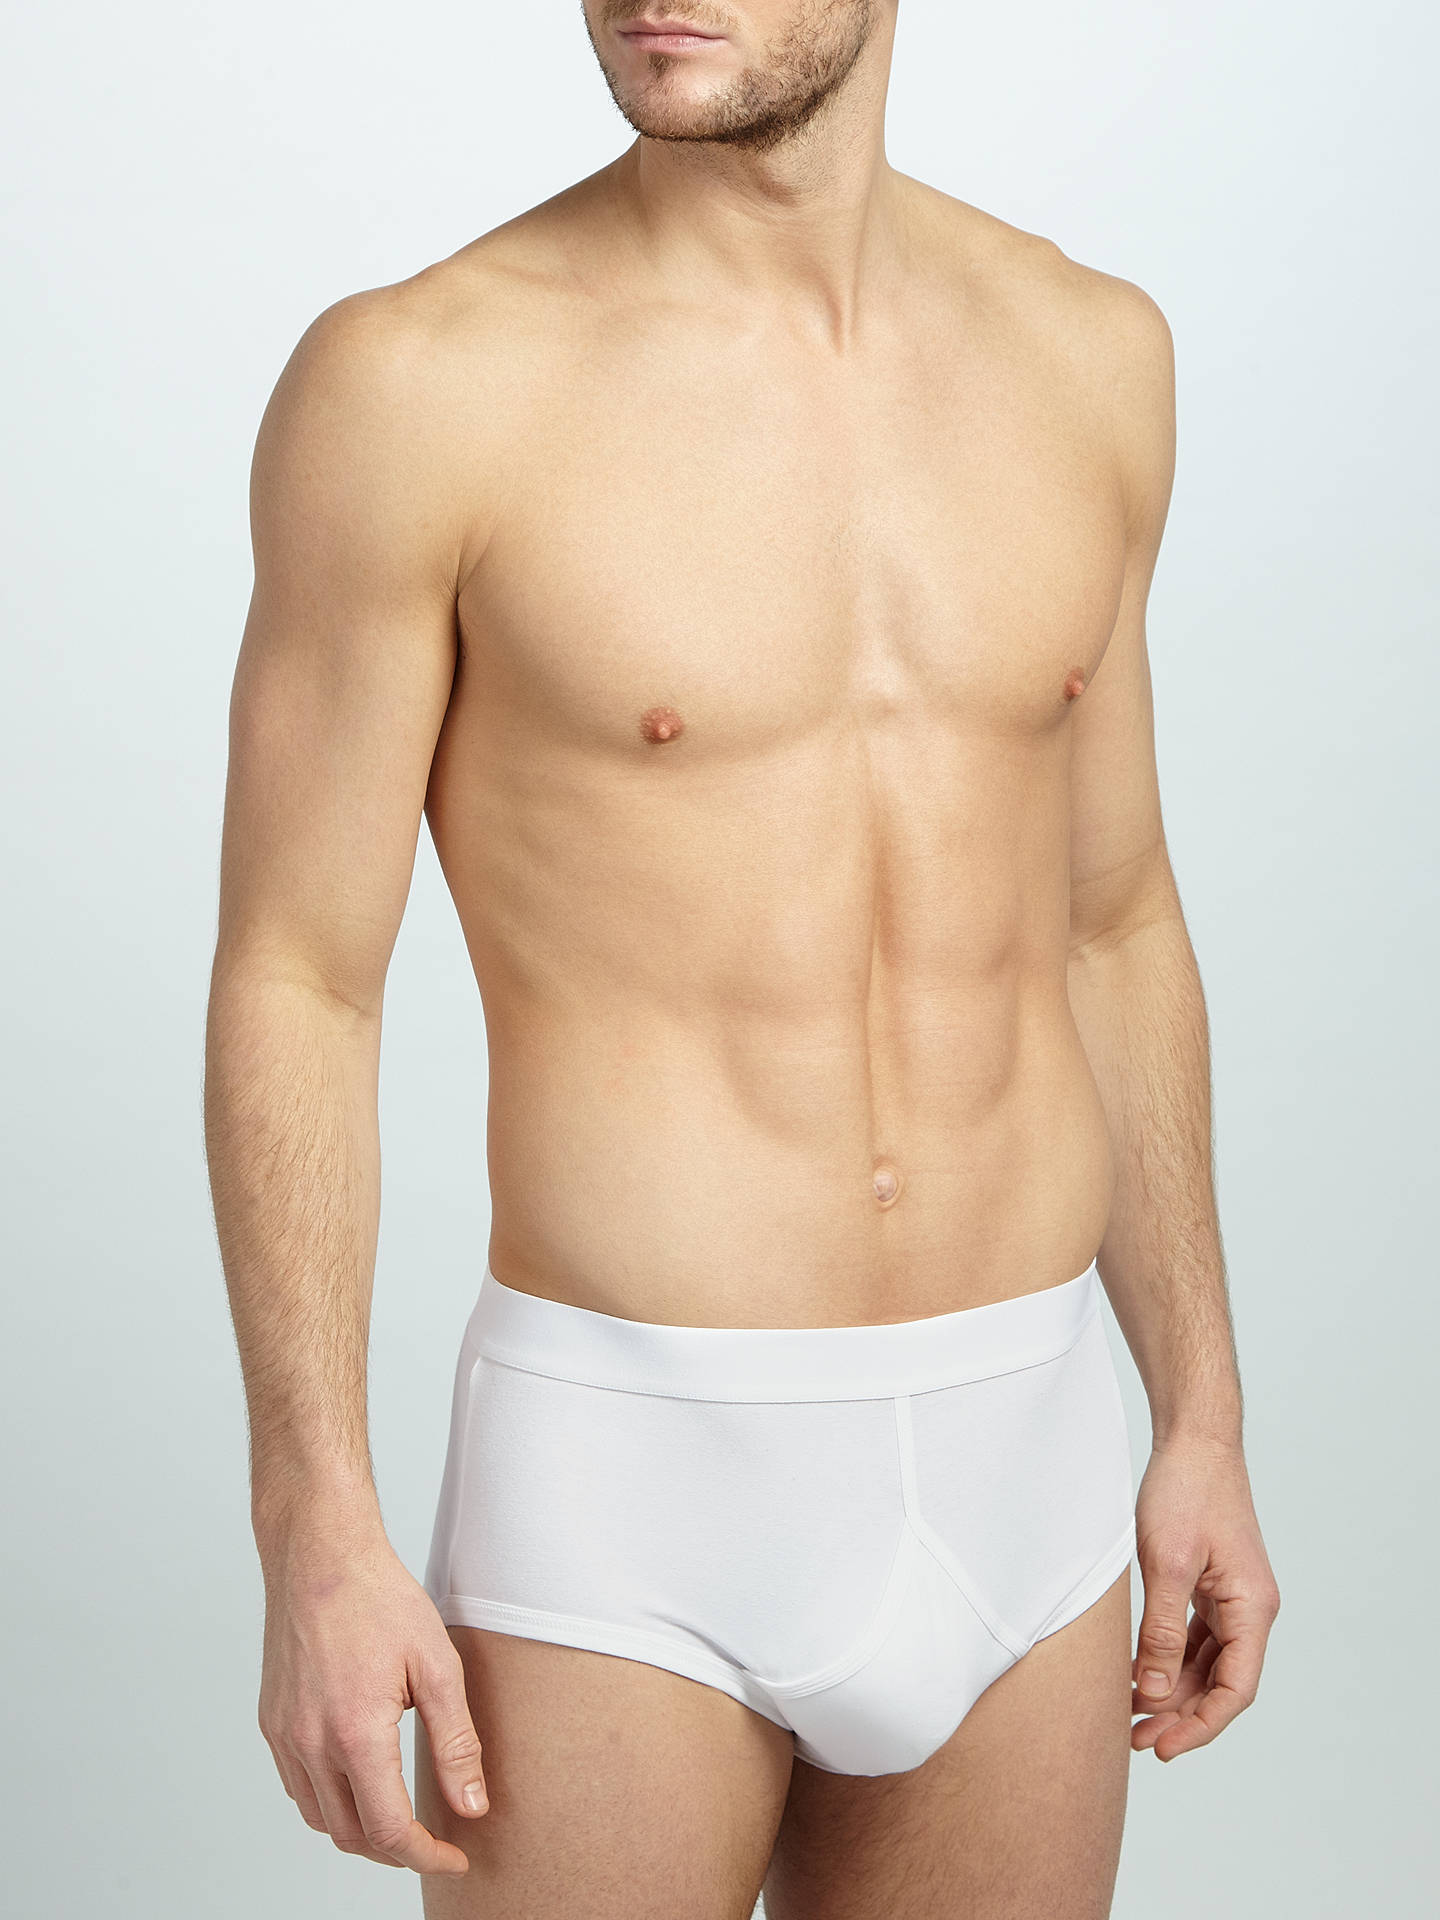 Buy John Lewis & Partners Organic Cotton Briefs, Pack of 4, White, XL Online at johnlewis.com